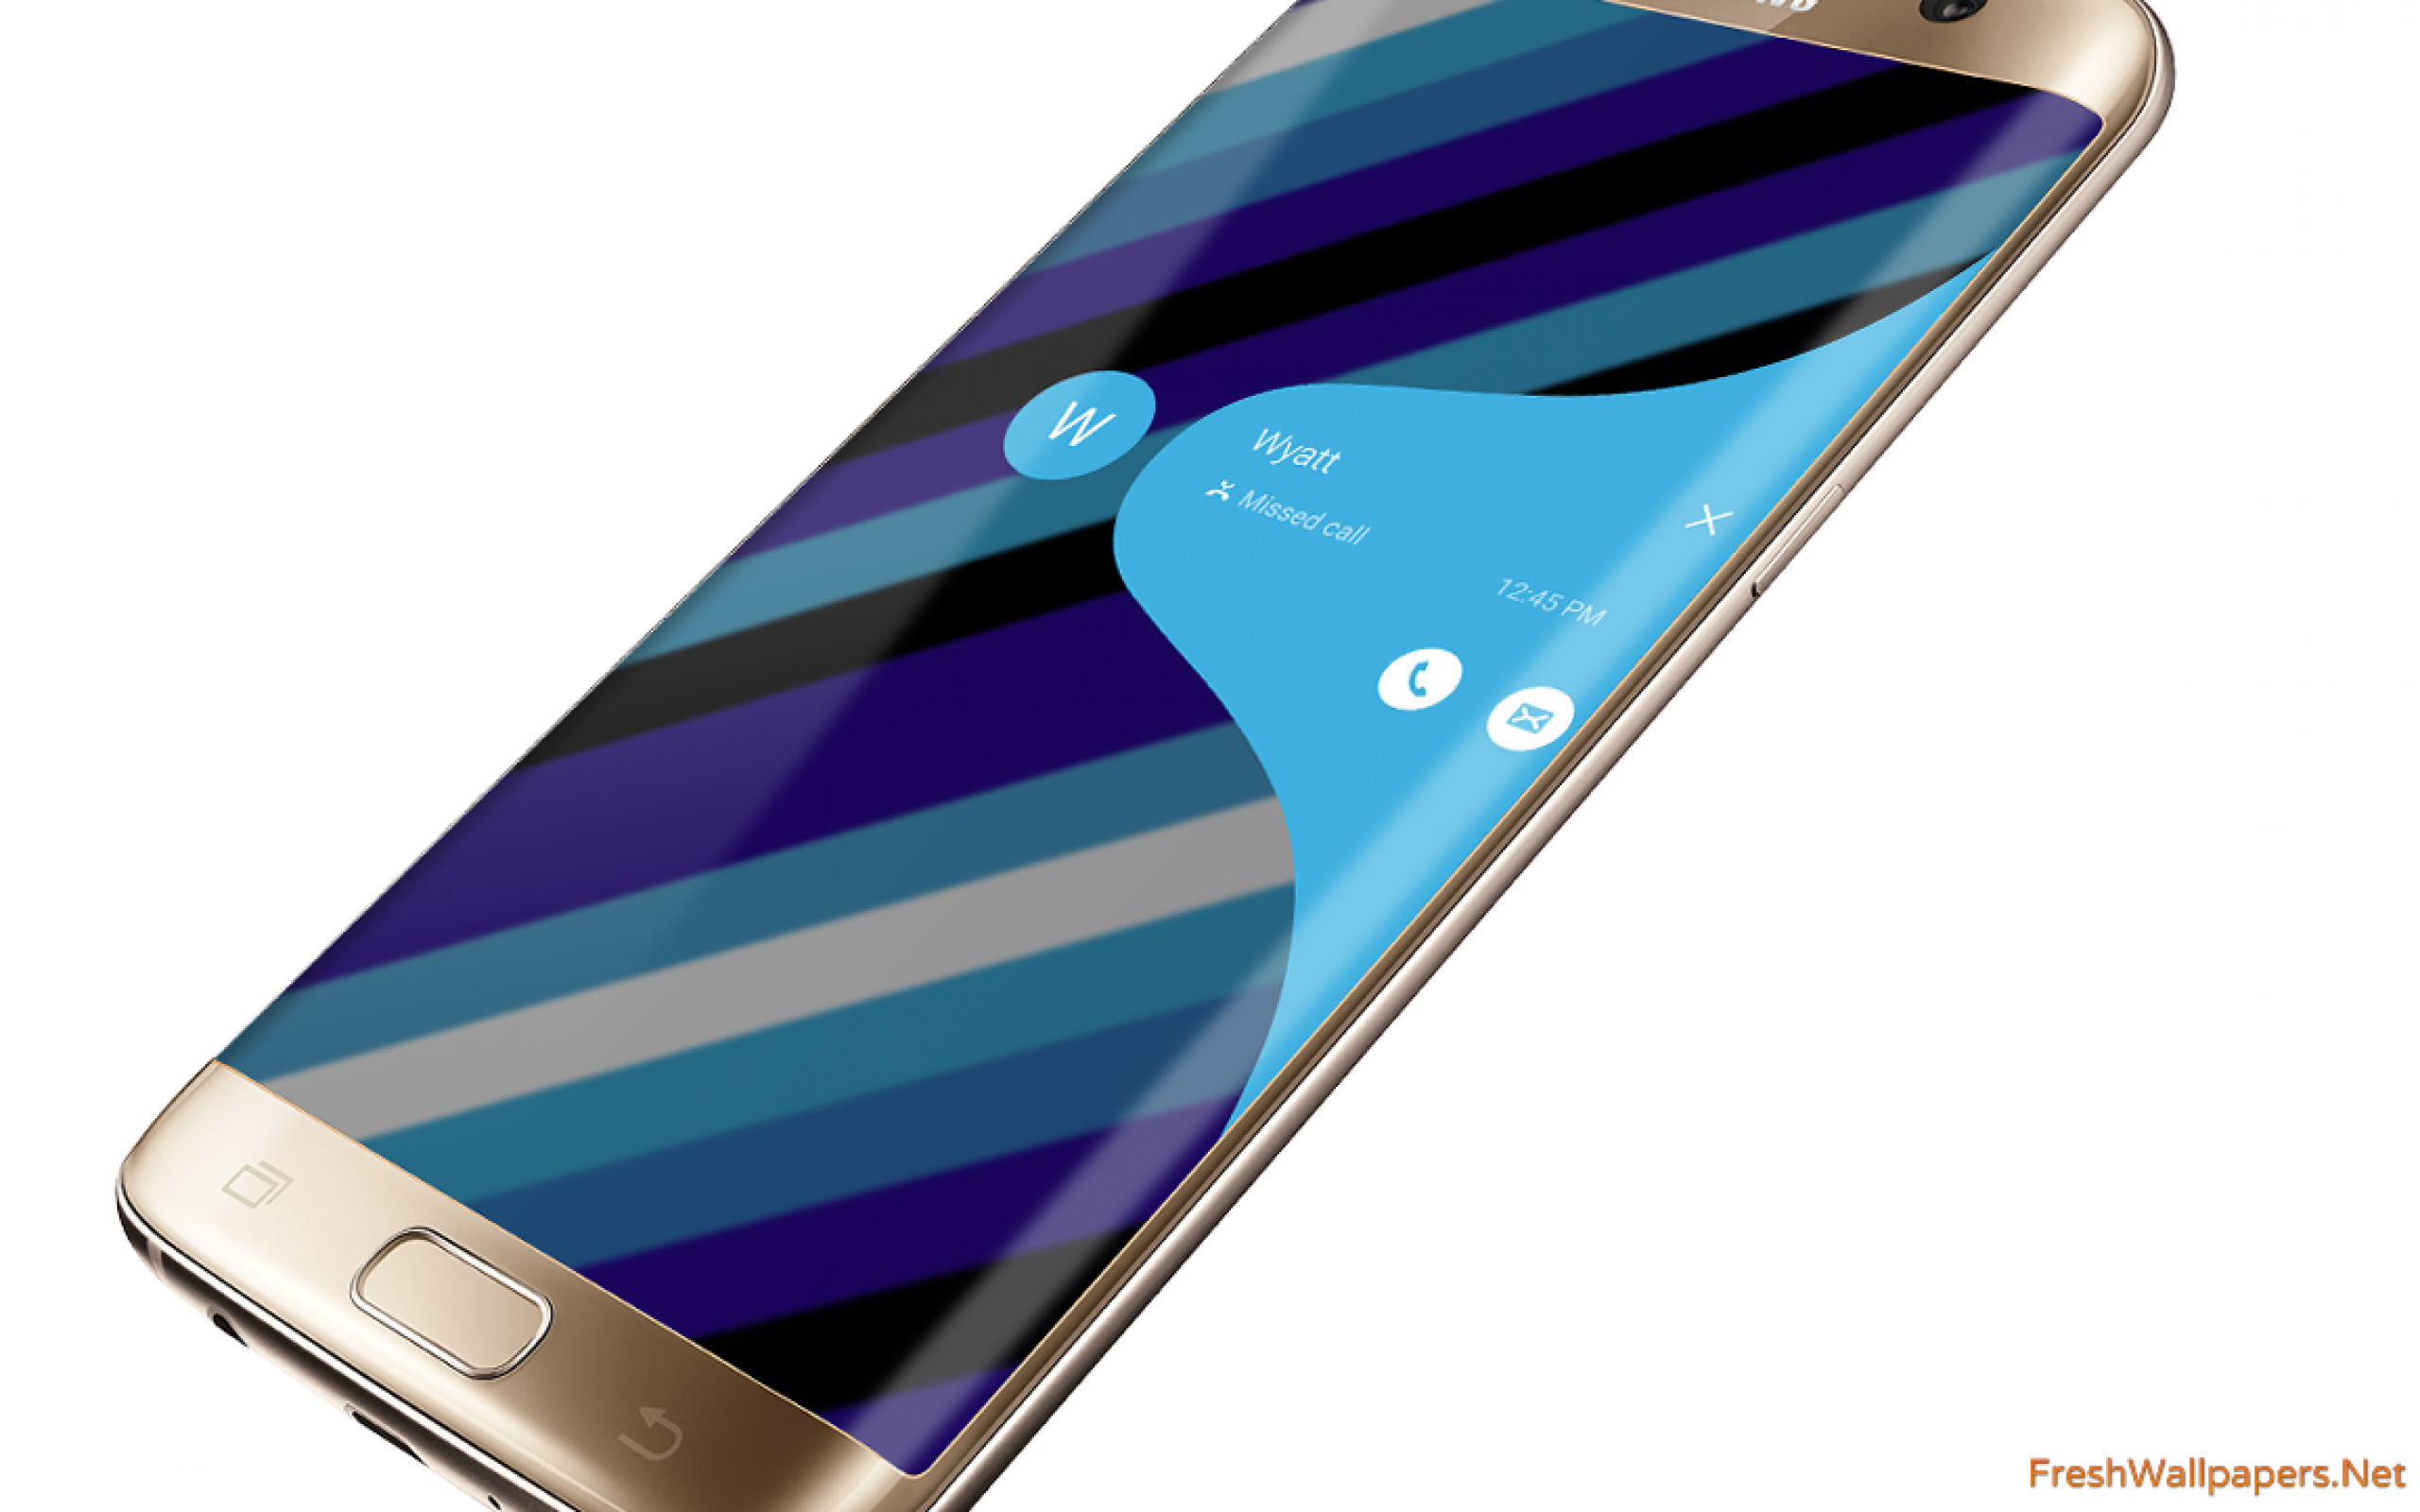 Galaxy S6 Edge Wallpaper Hd Hd Wallpapers 1080p For